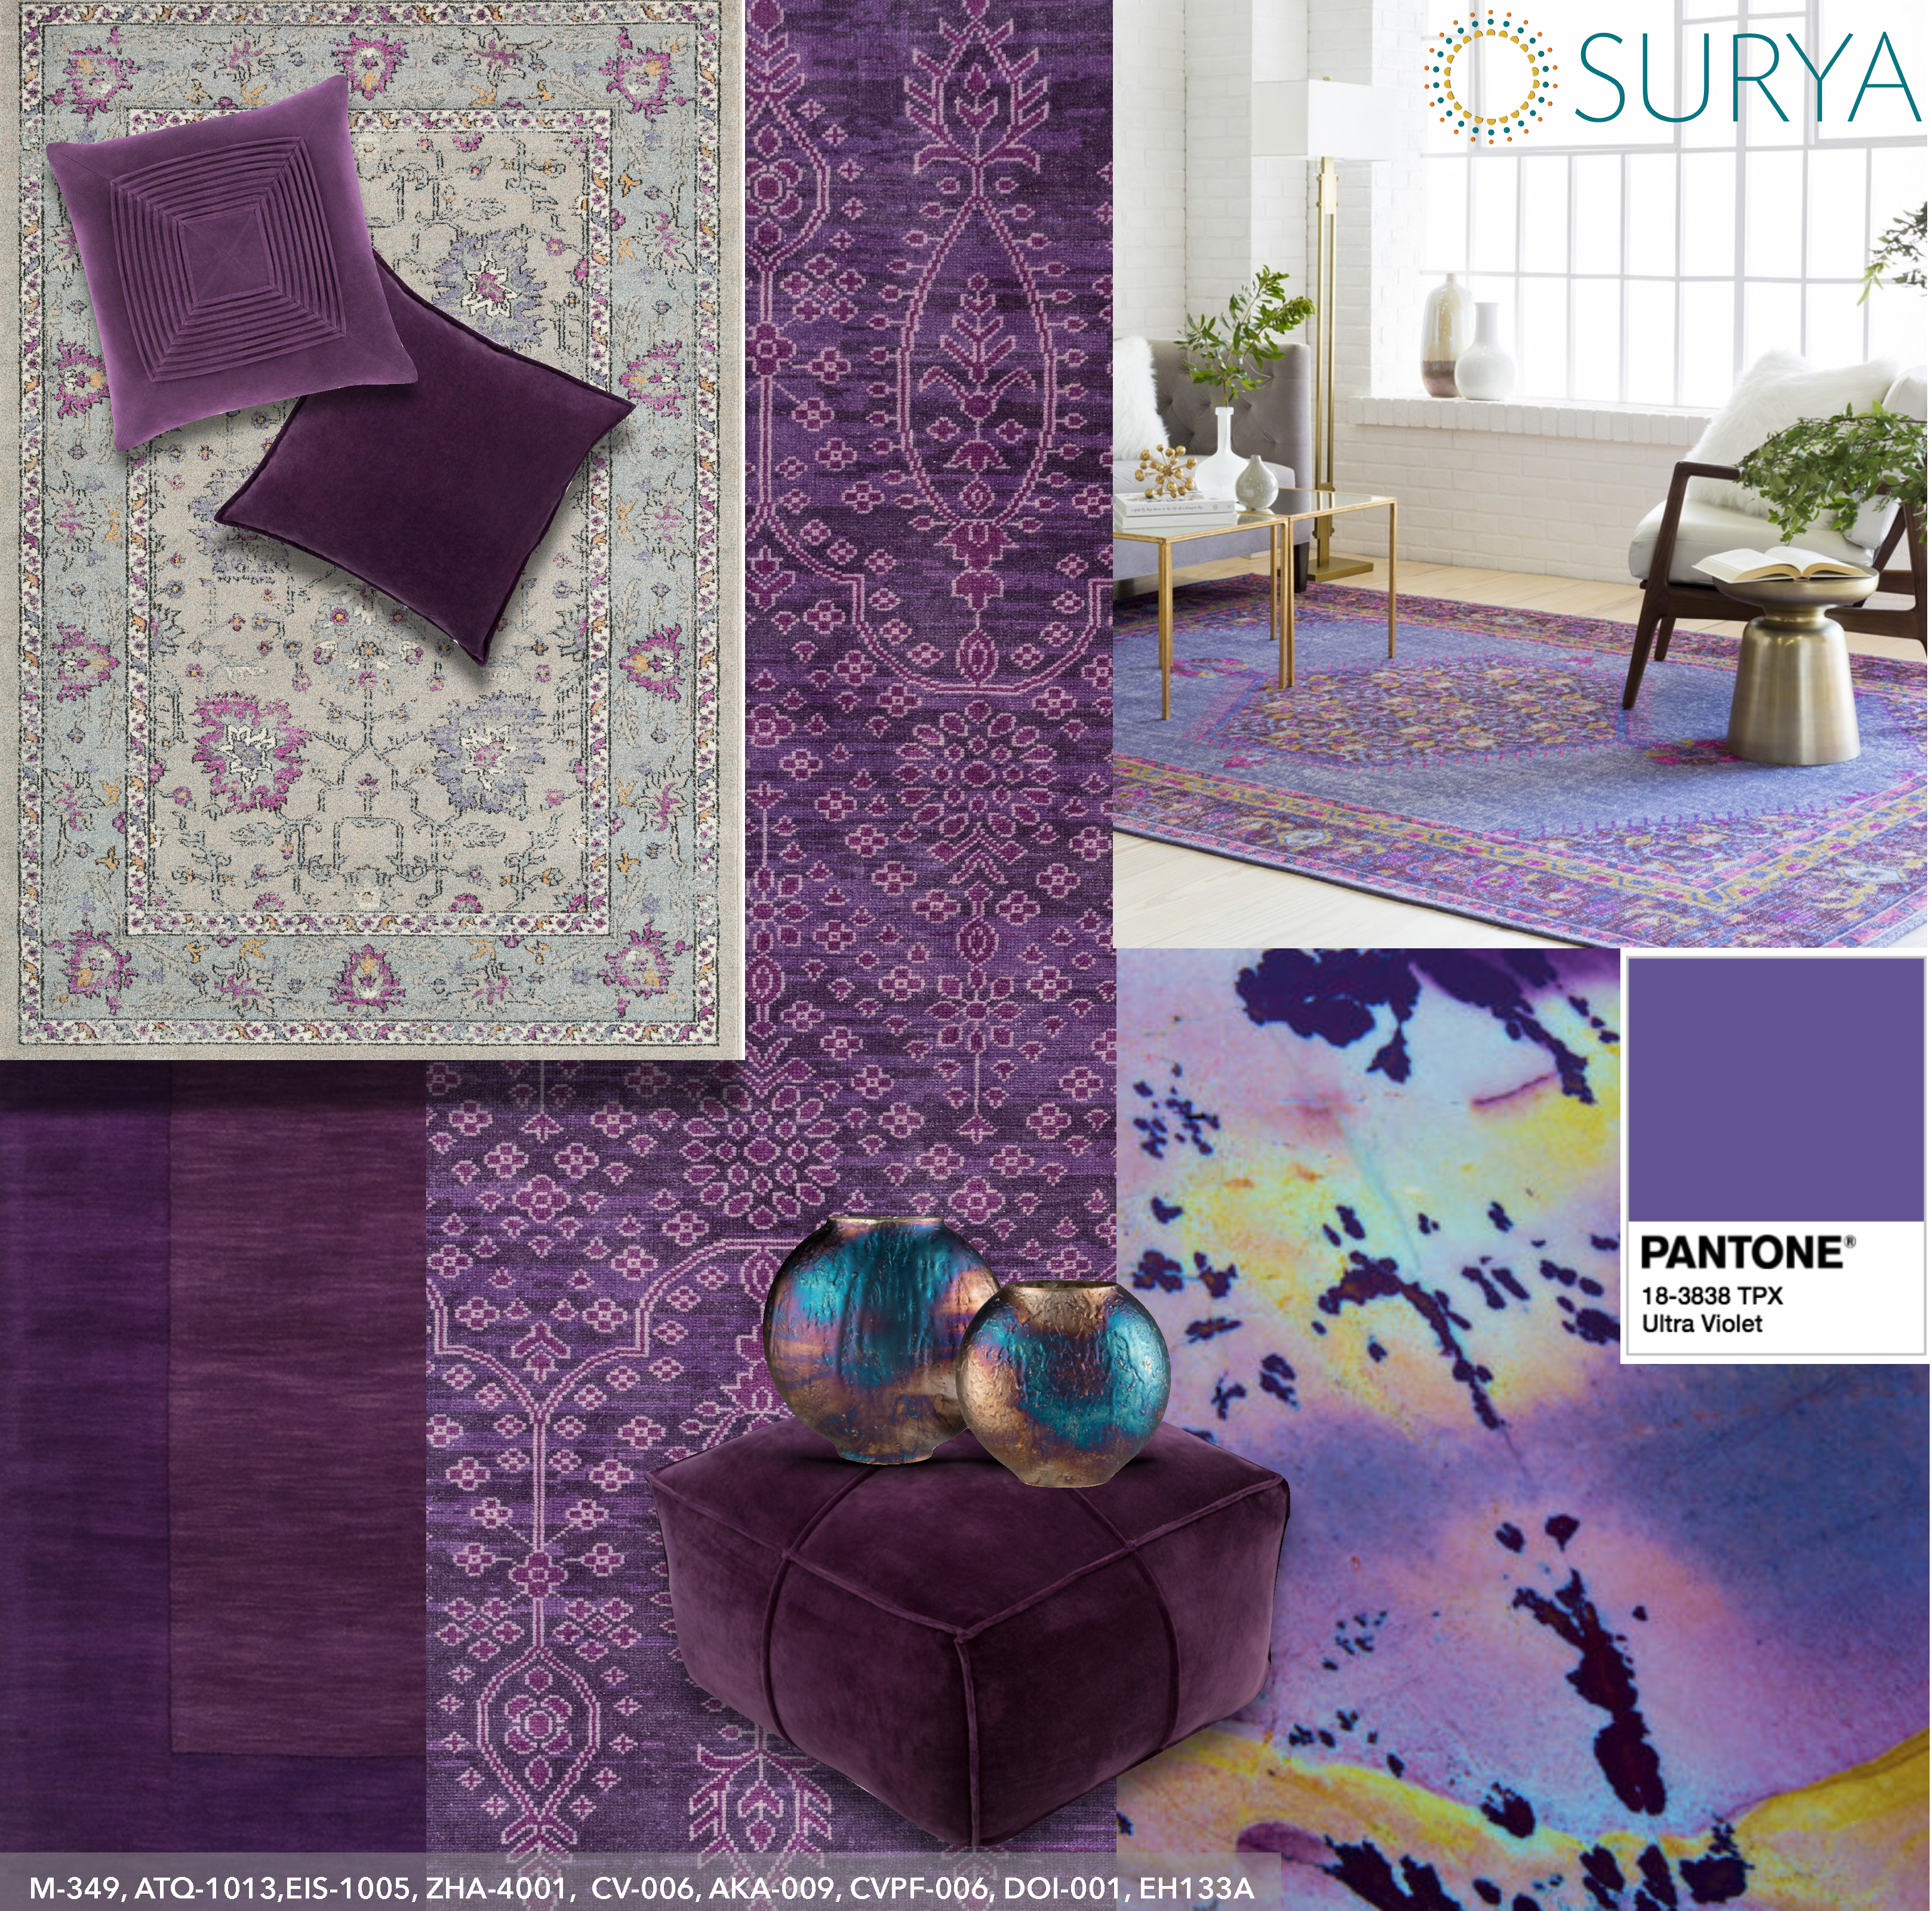 Just In Time For The Winter Markets Surya Will Be Showcasing A Variety Of Rugs And Accessories Ultra Violet Pantone 2018 Color Year